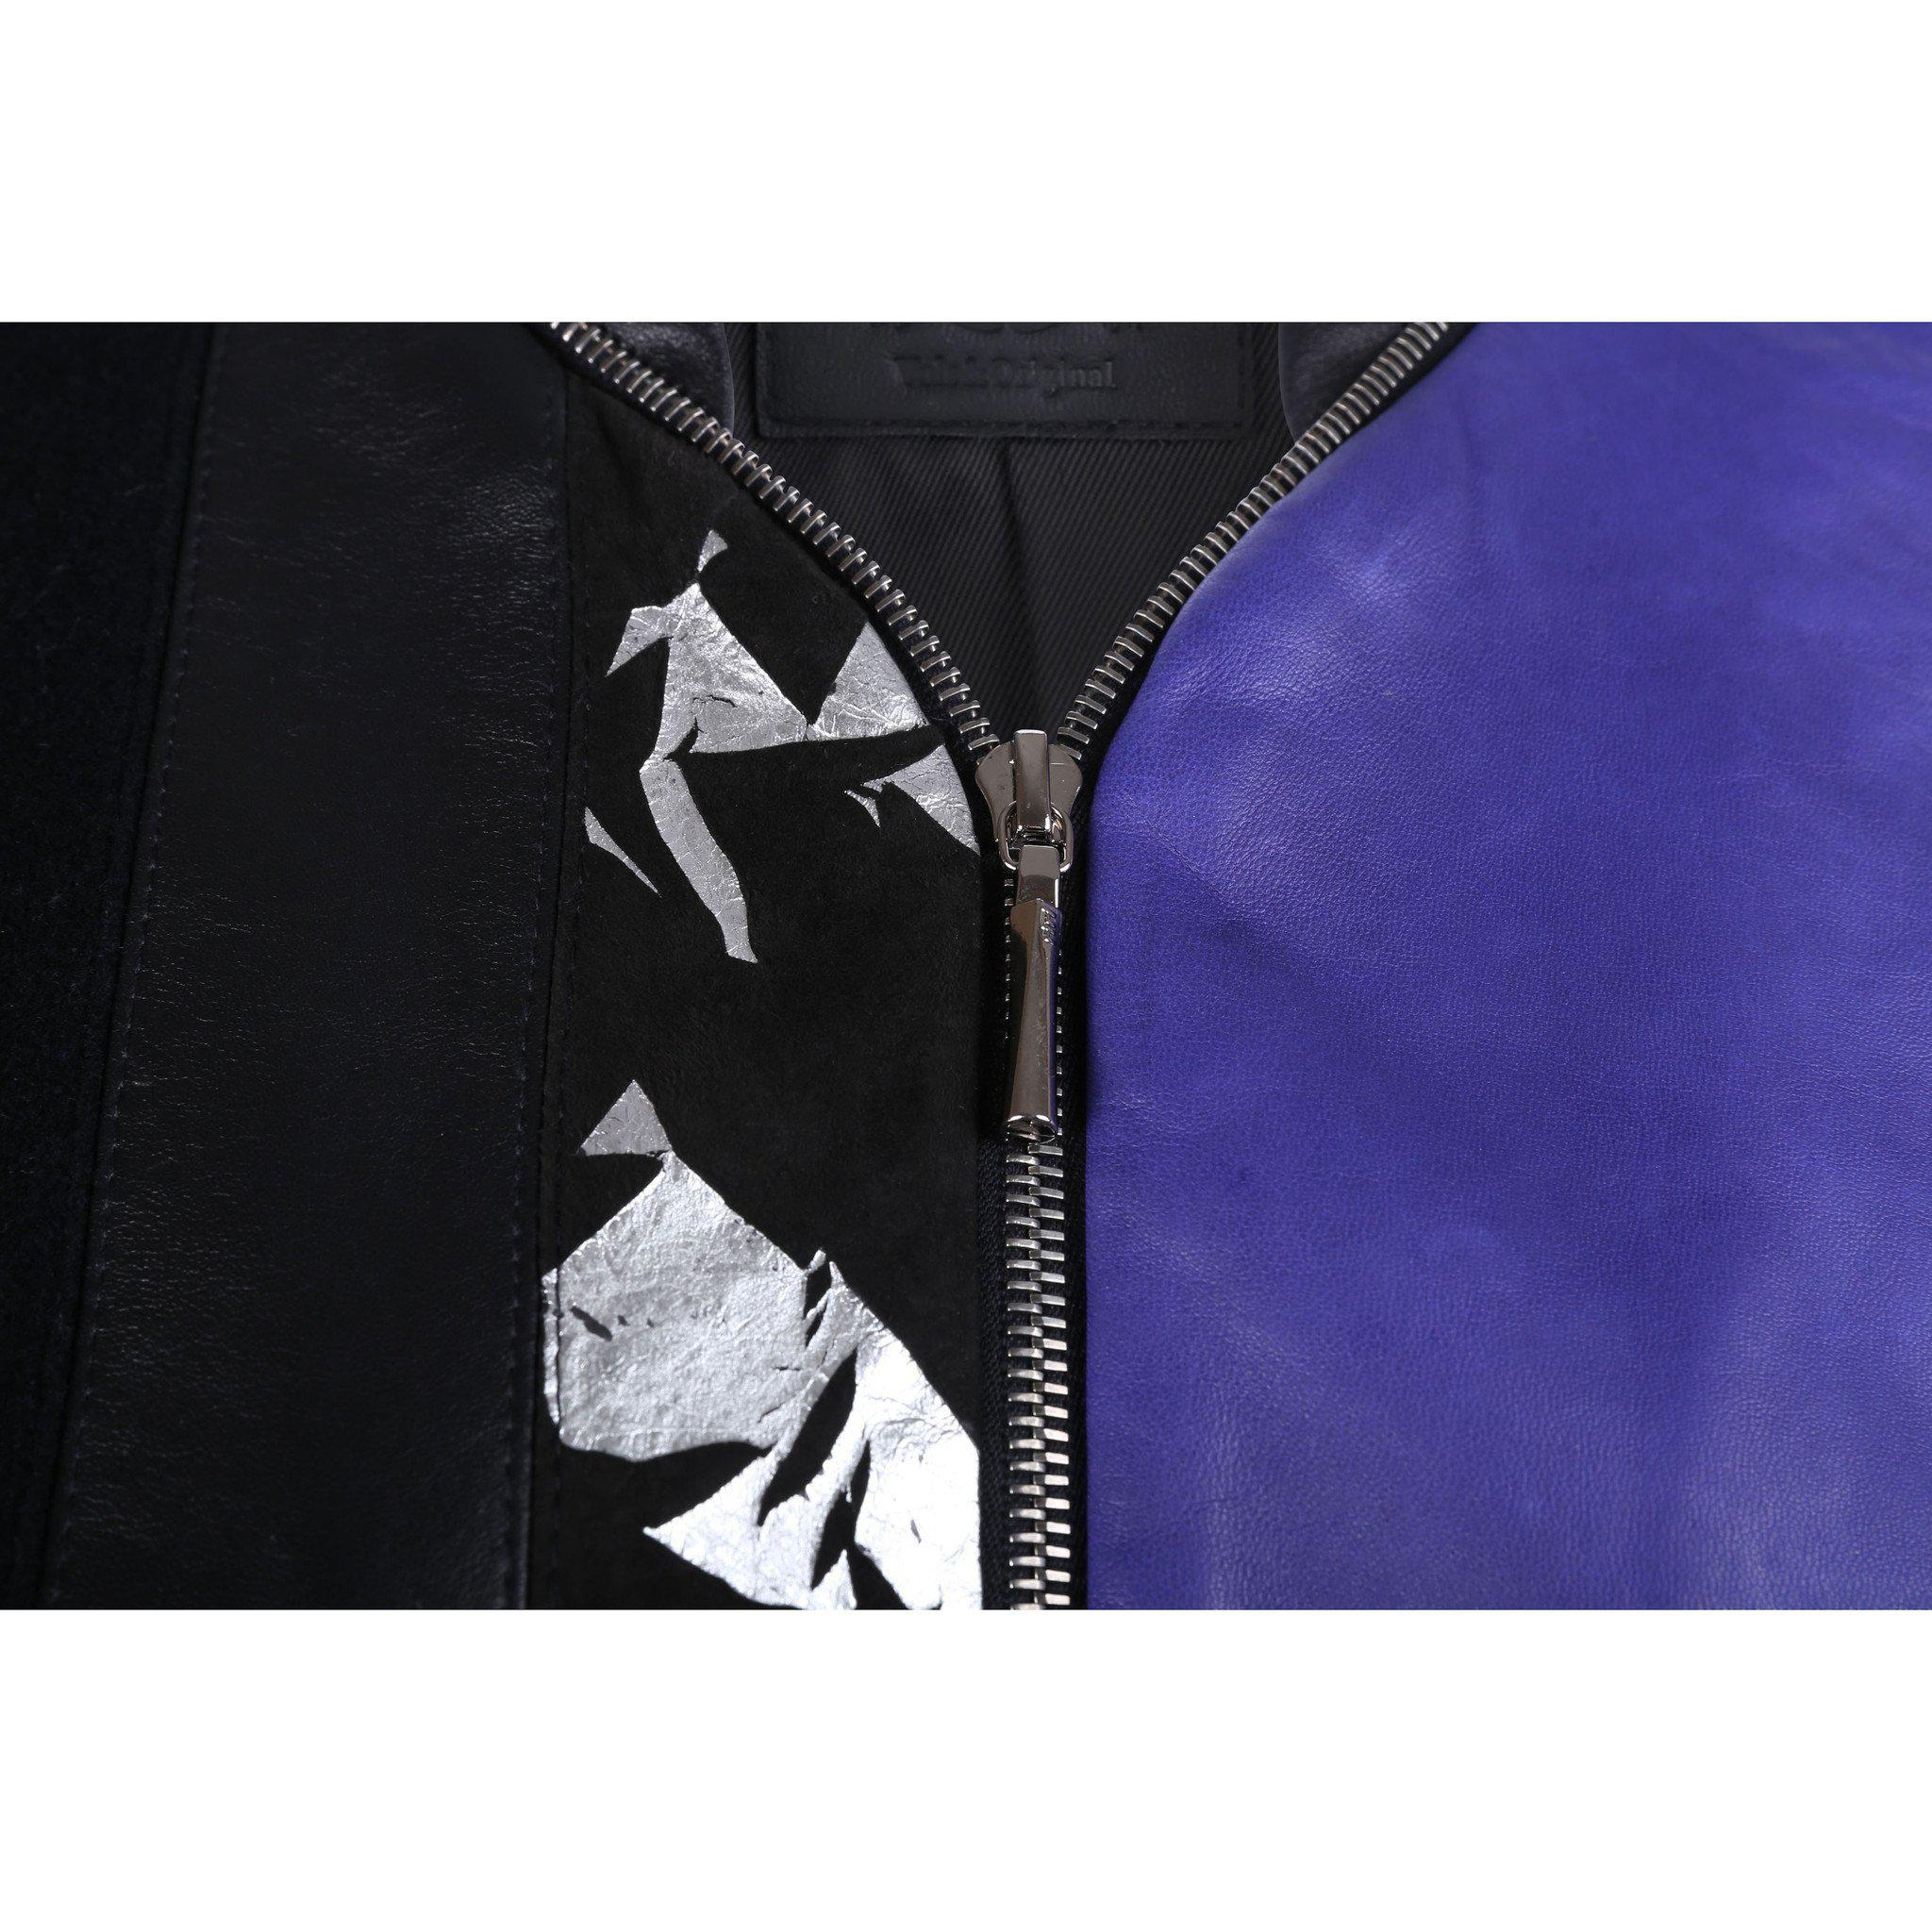 Black and Purple Leather Bomber Jacket with Silver Print Motif 4